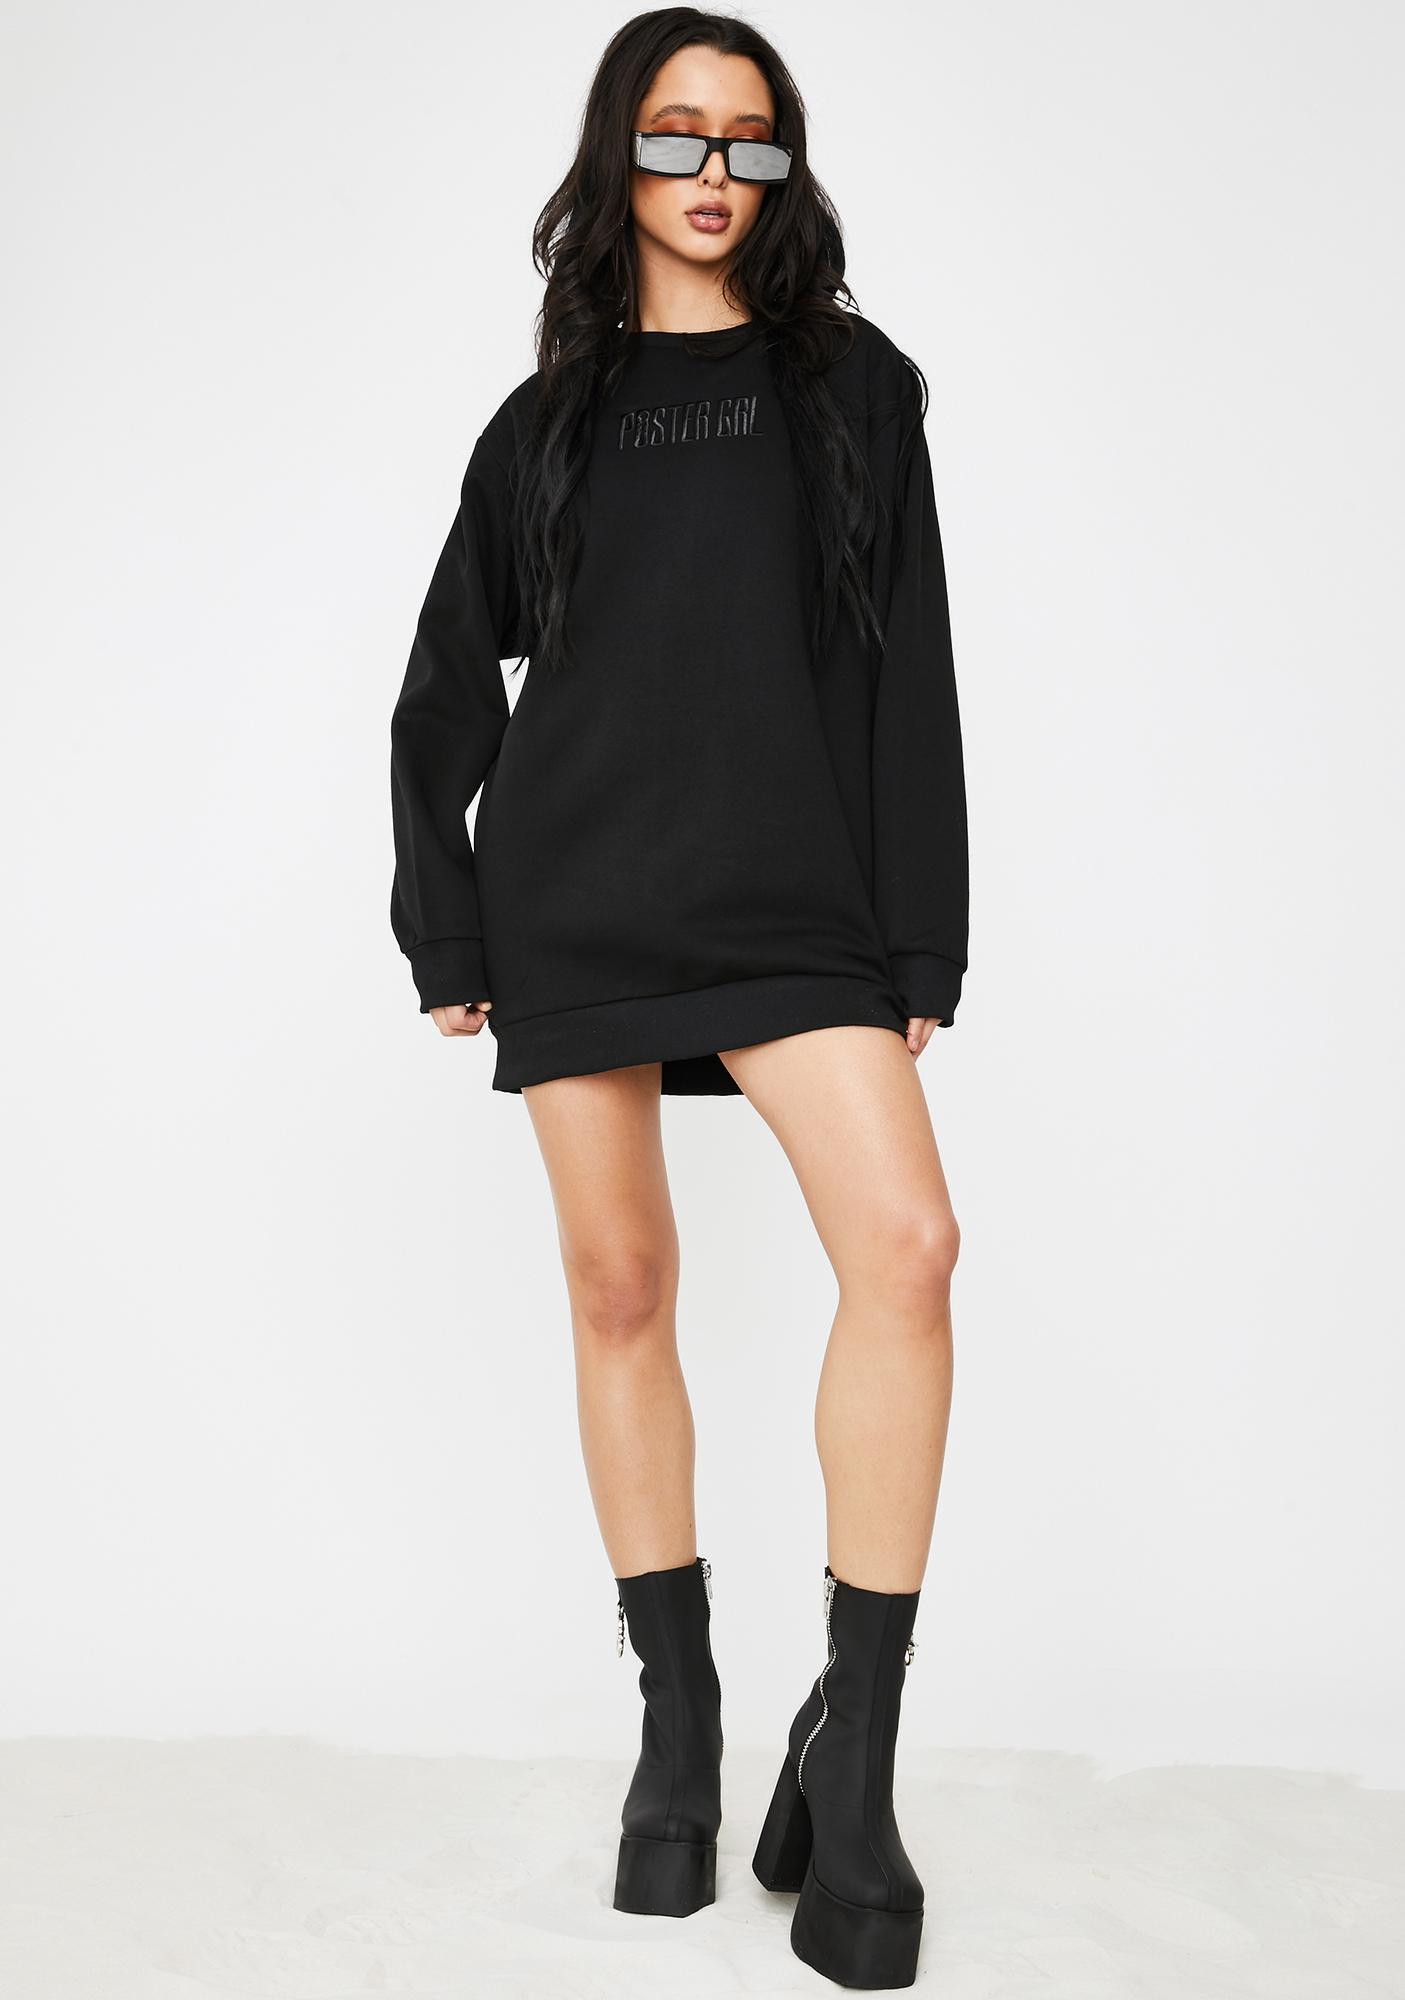 Poster Grl In Squad We Trust Sweater Dress